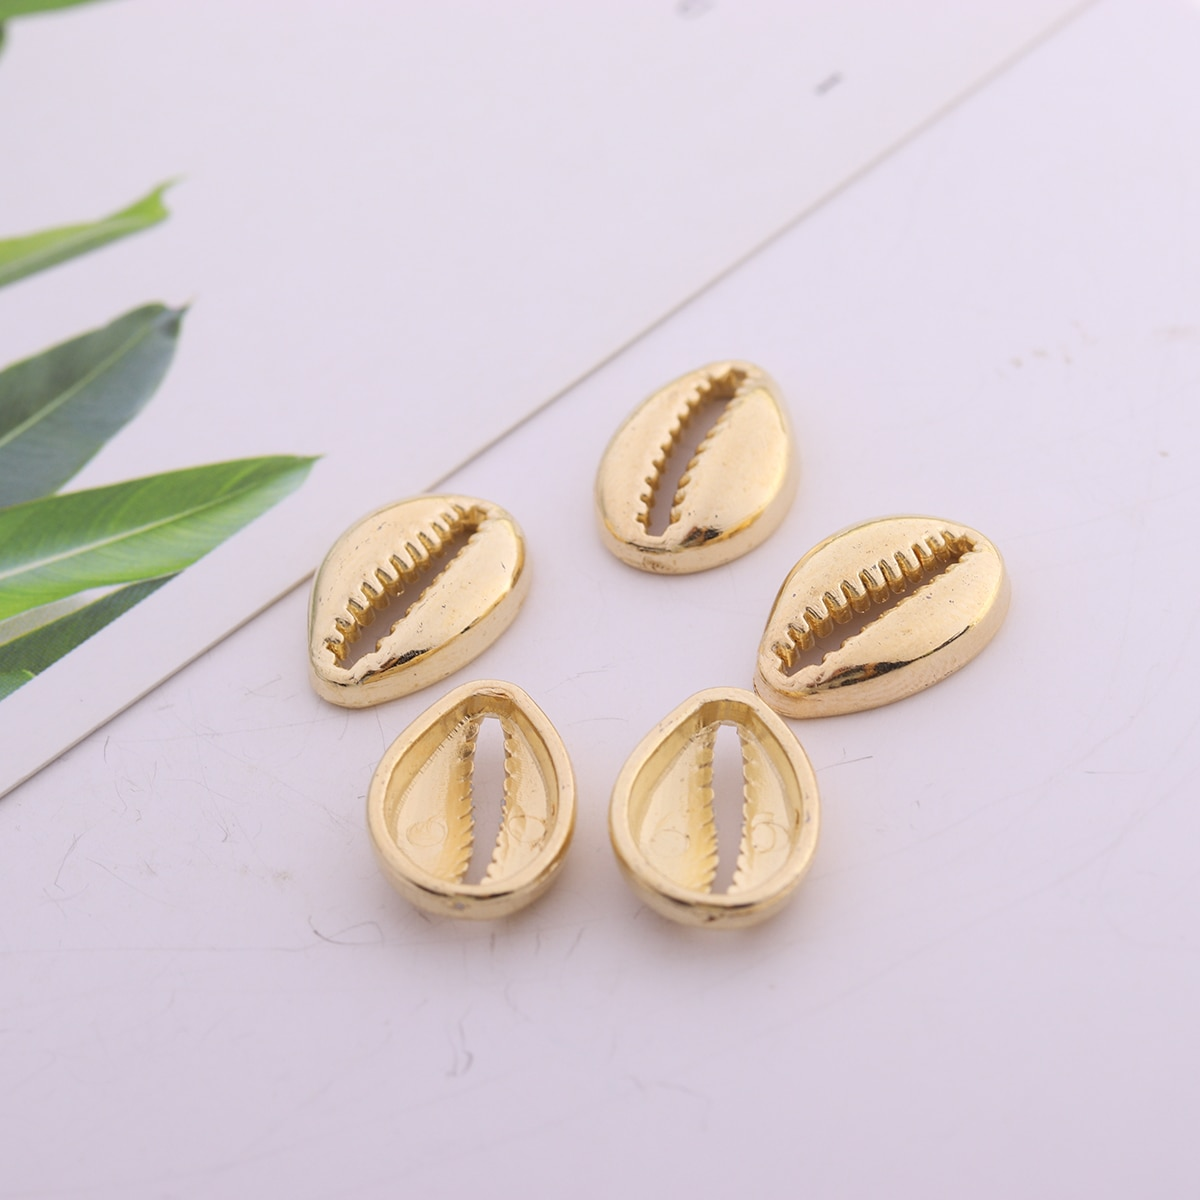 20 6*6mm Inside Hole 1mm CCB Gold Silver Color Seed Spacer Beads For Jewelry Making DIY Beaded Accessories  - buy with discount